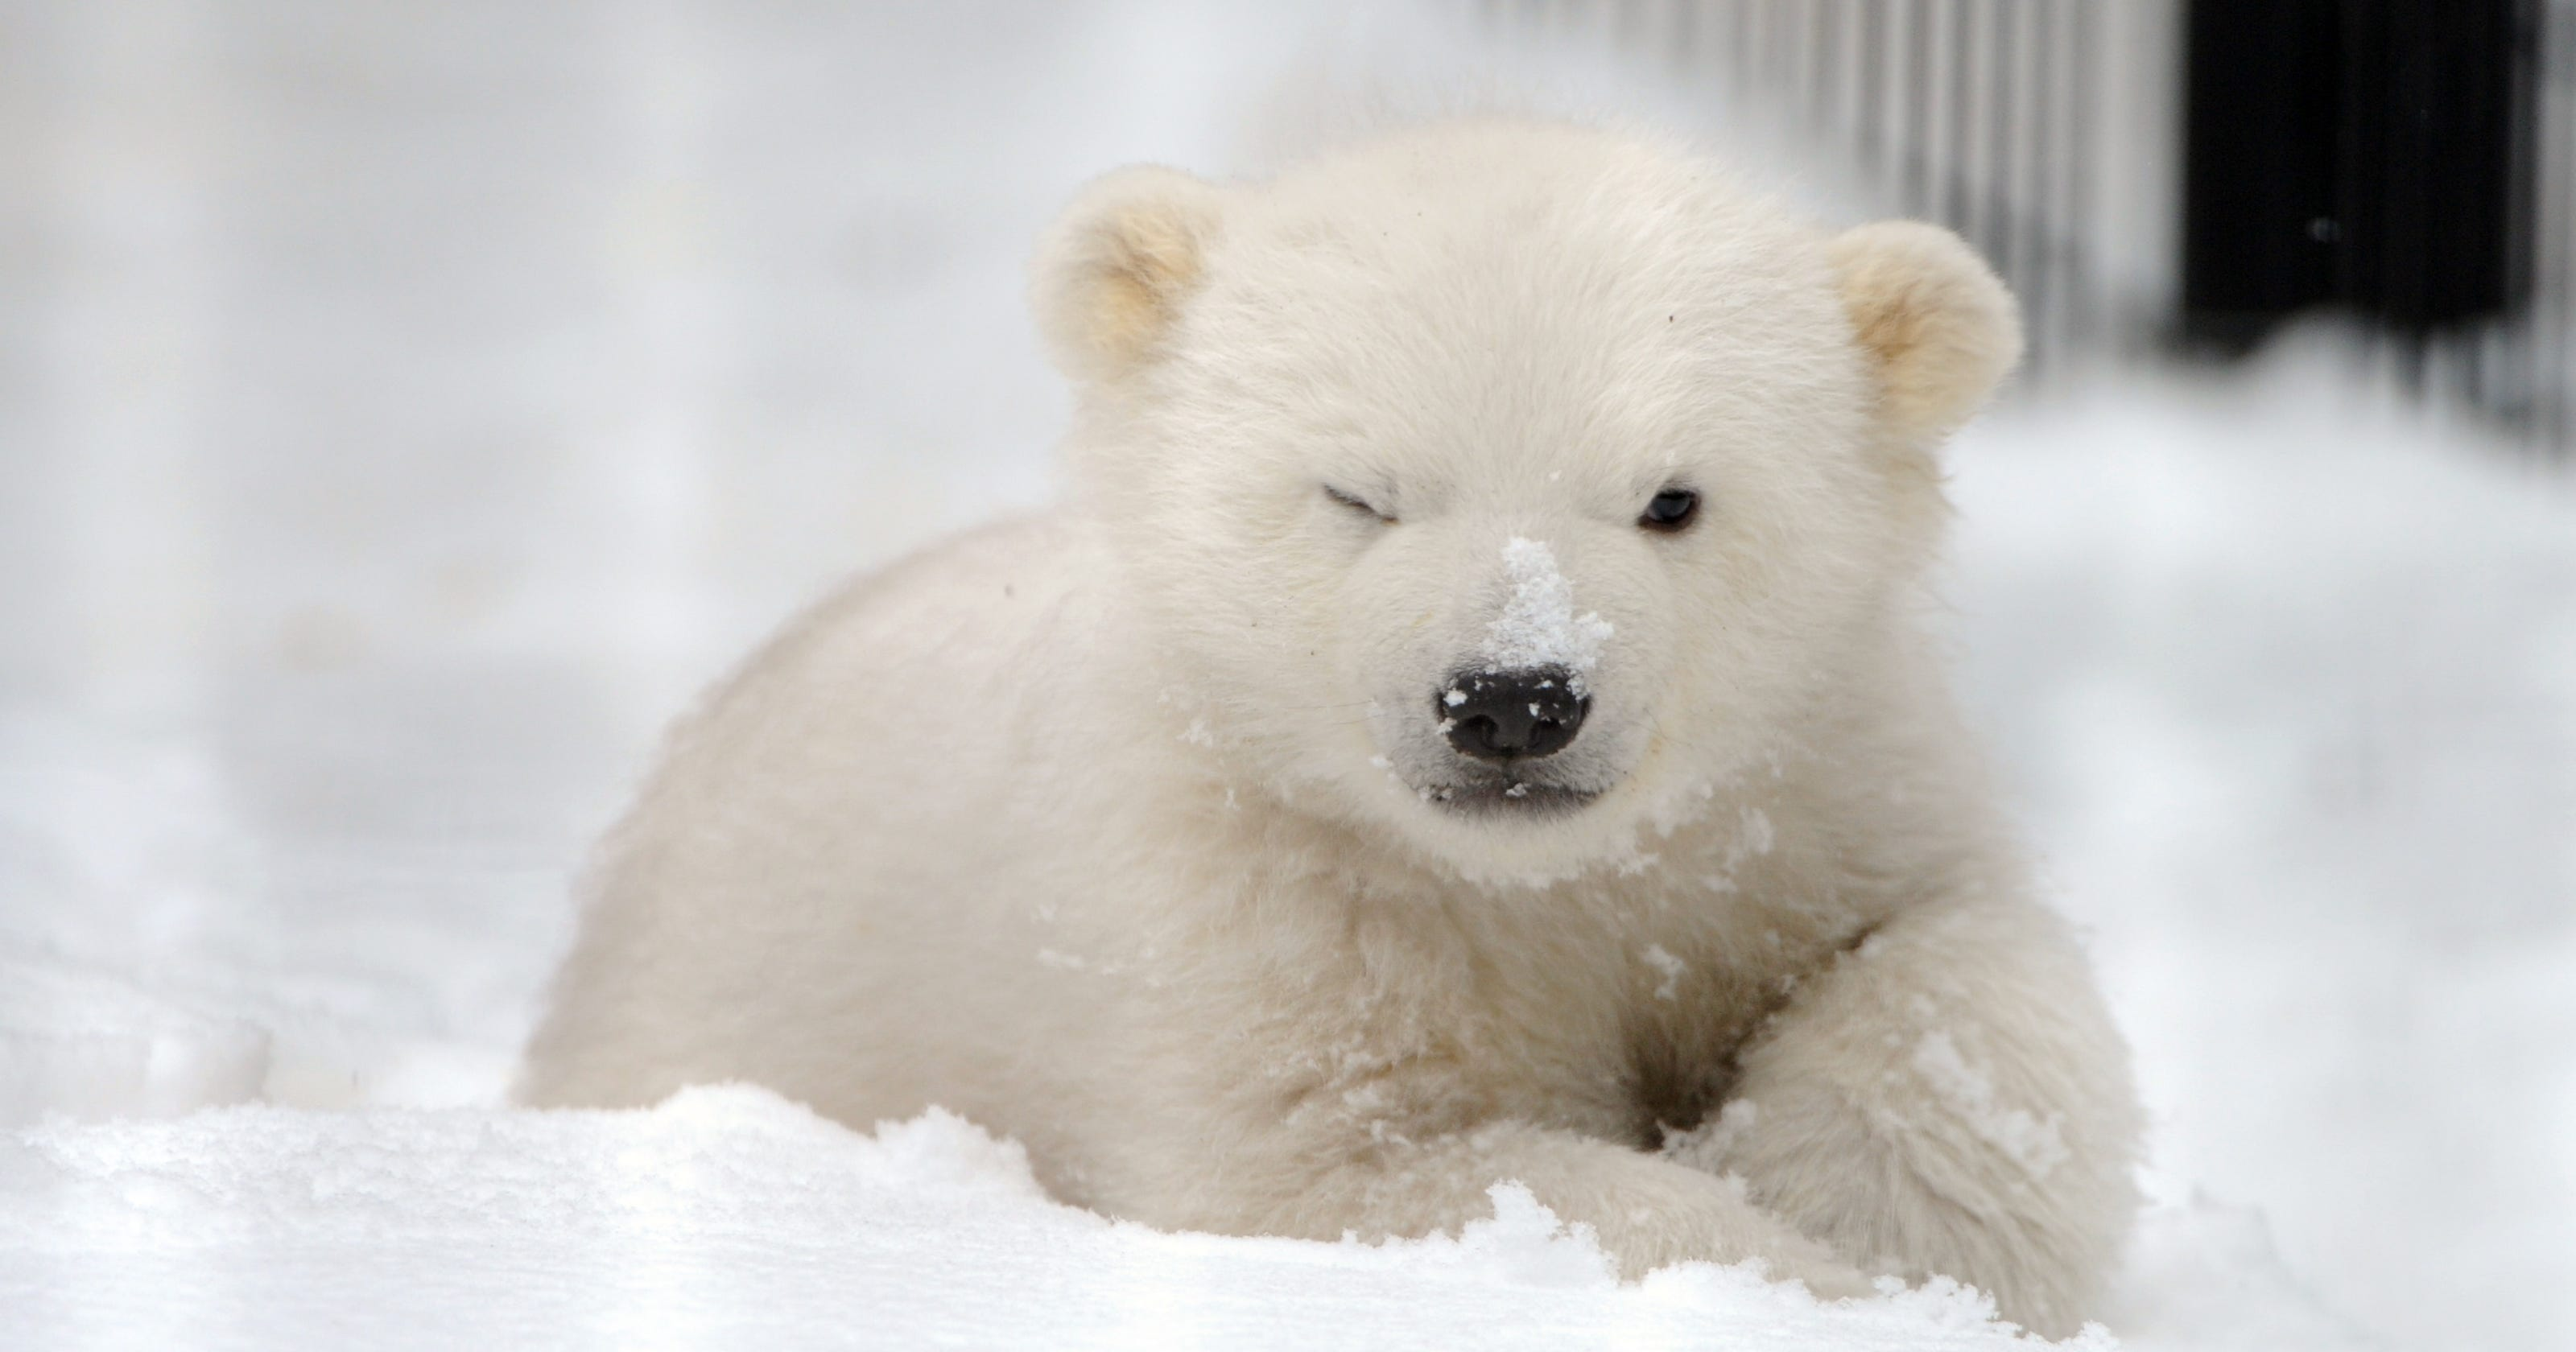 Polar bears and melting ice: 3 facts that may surprise you